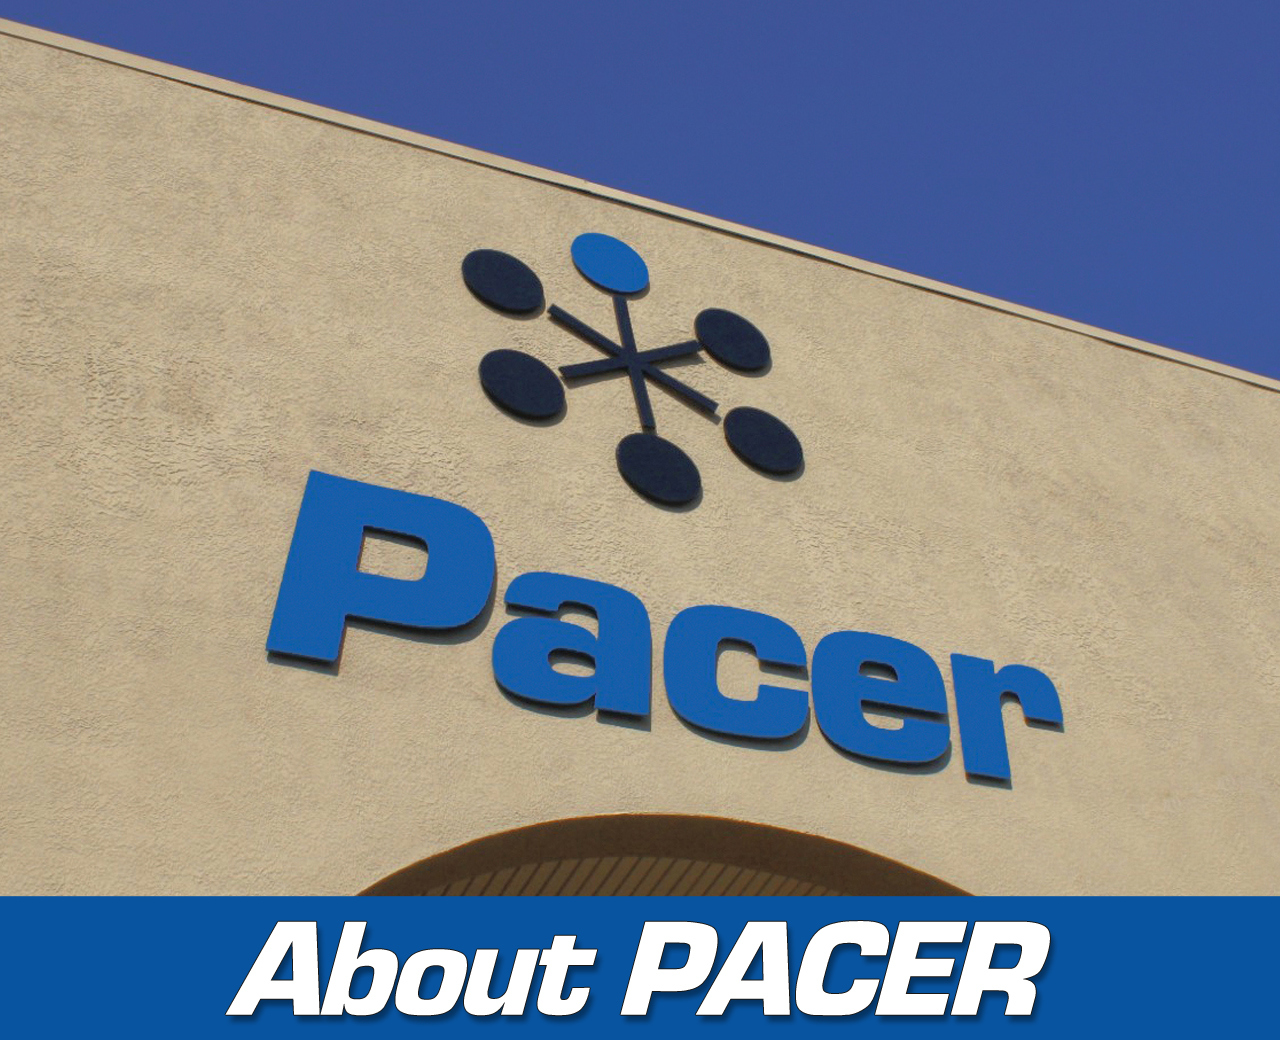 about-pacer2.jpg